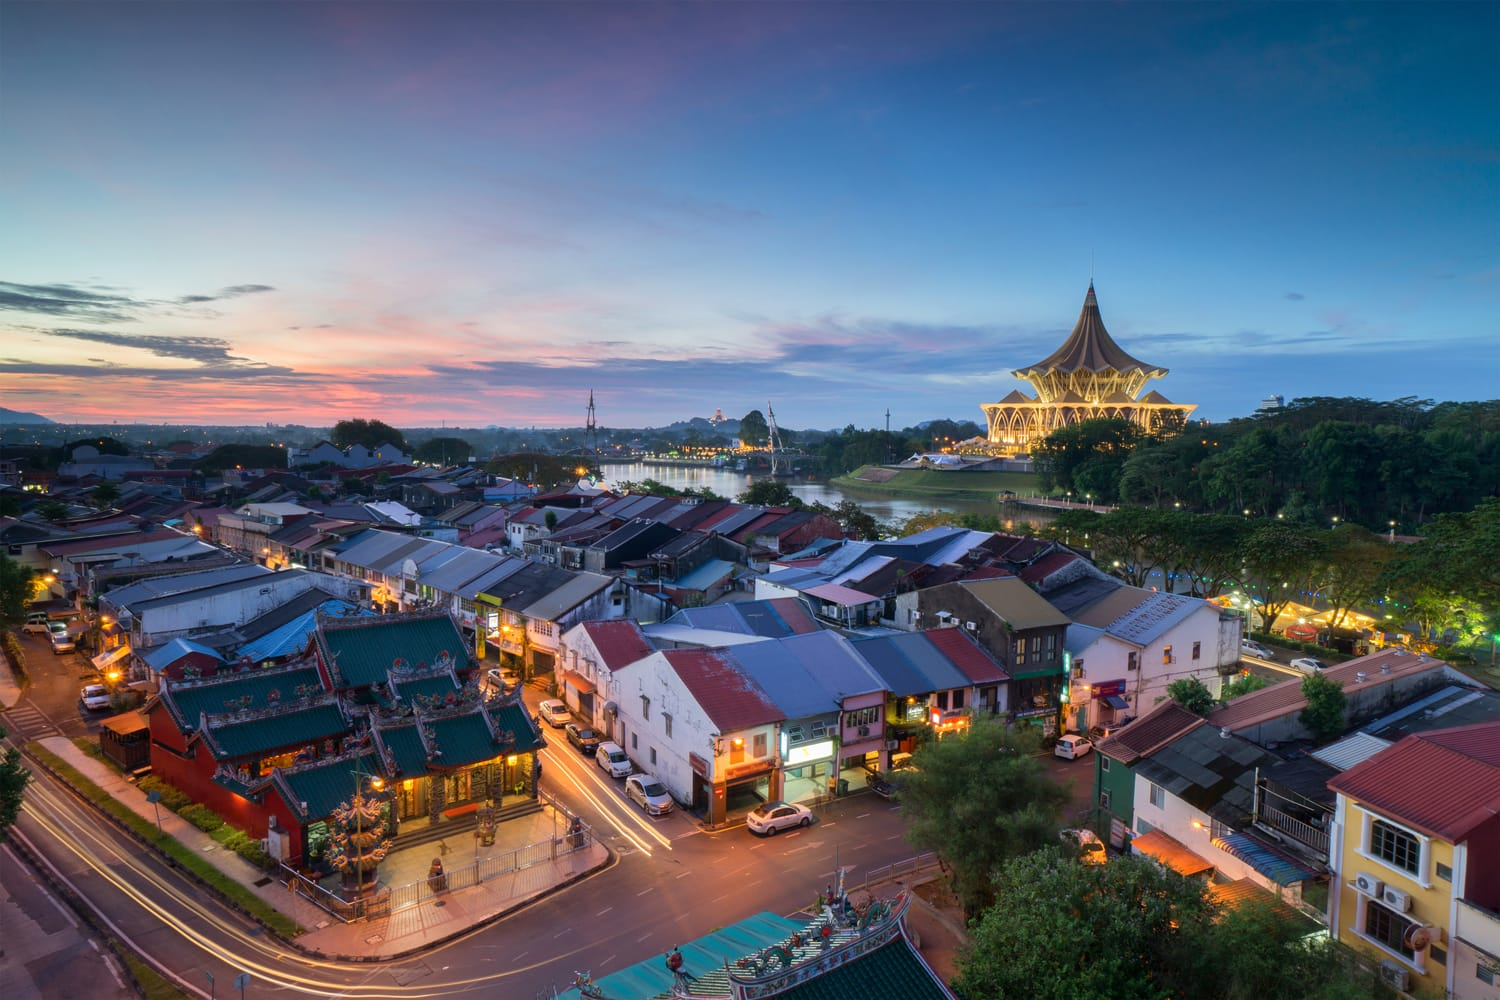 Kuching City in Malaysia during sunset